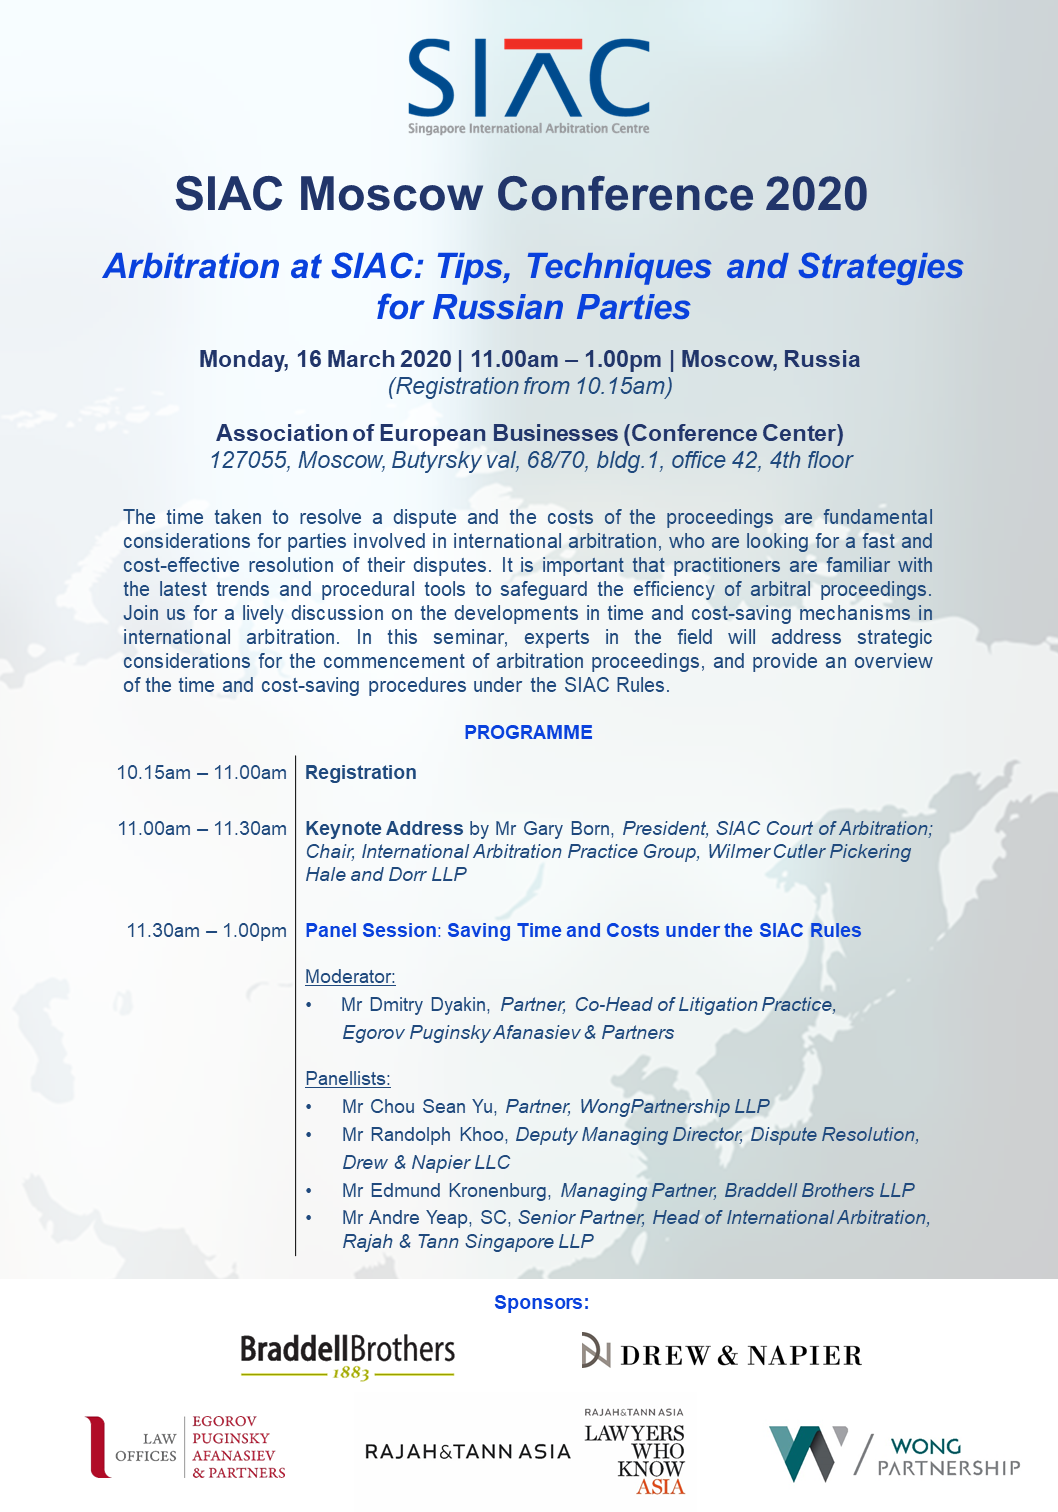 images/SIAC Moscow Conference Flyer_16 Mar 2020.png